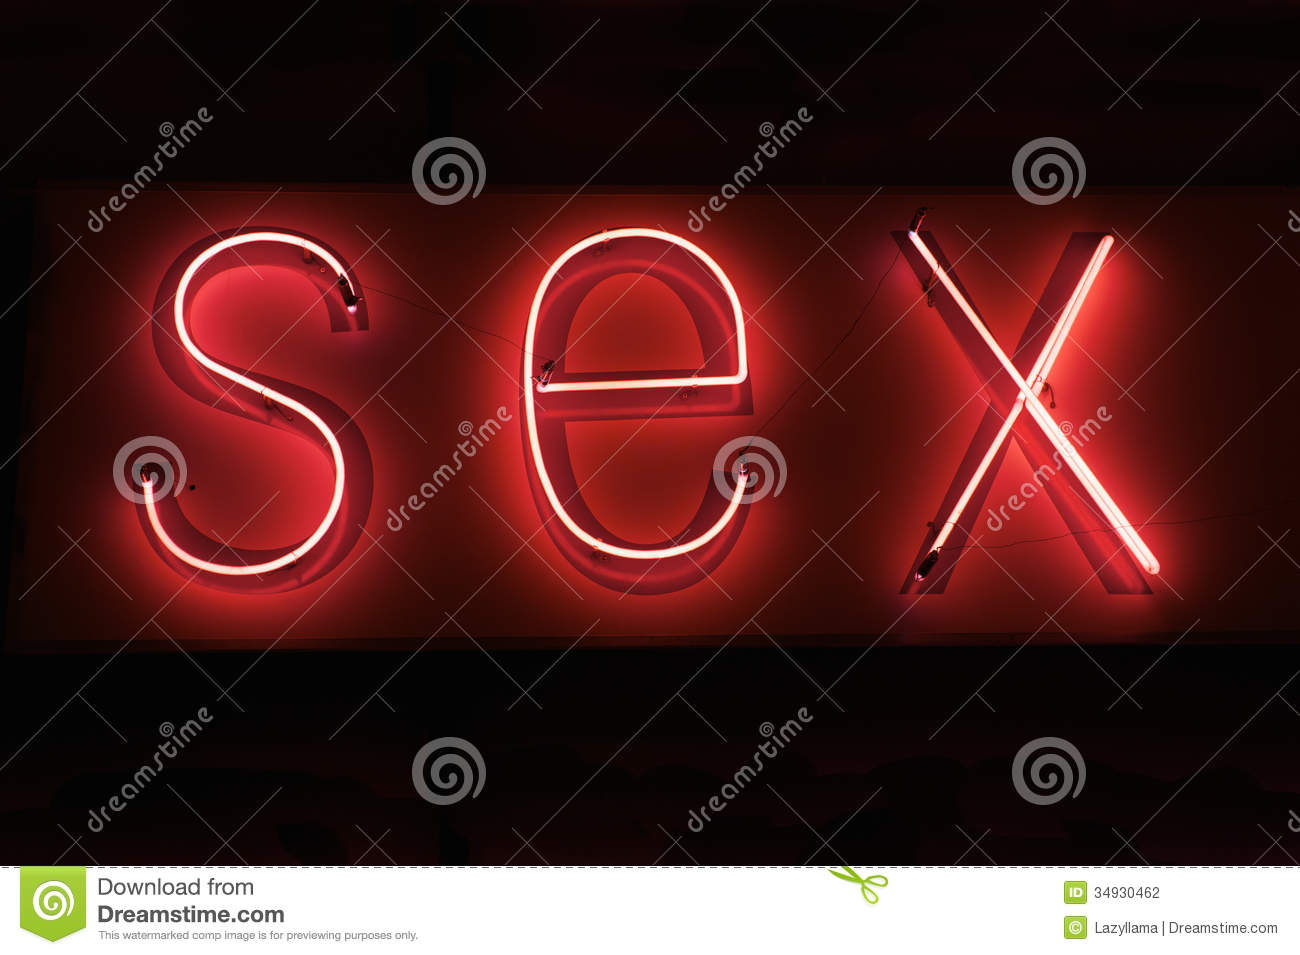 SEX hot red neon on black background